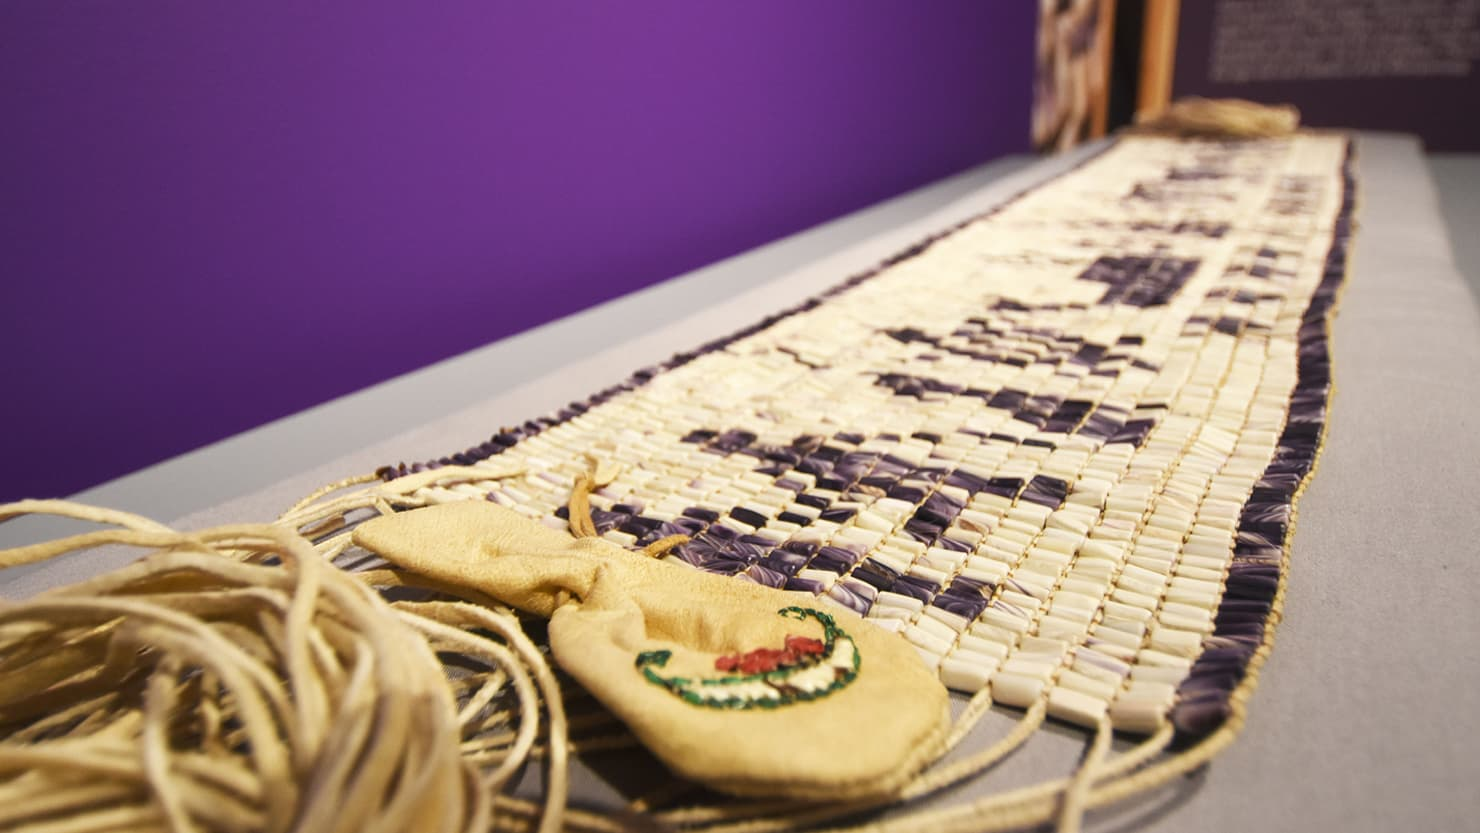 Wampum belt on display at The Box, Plymouth